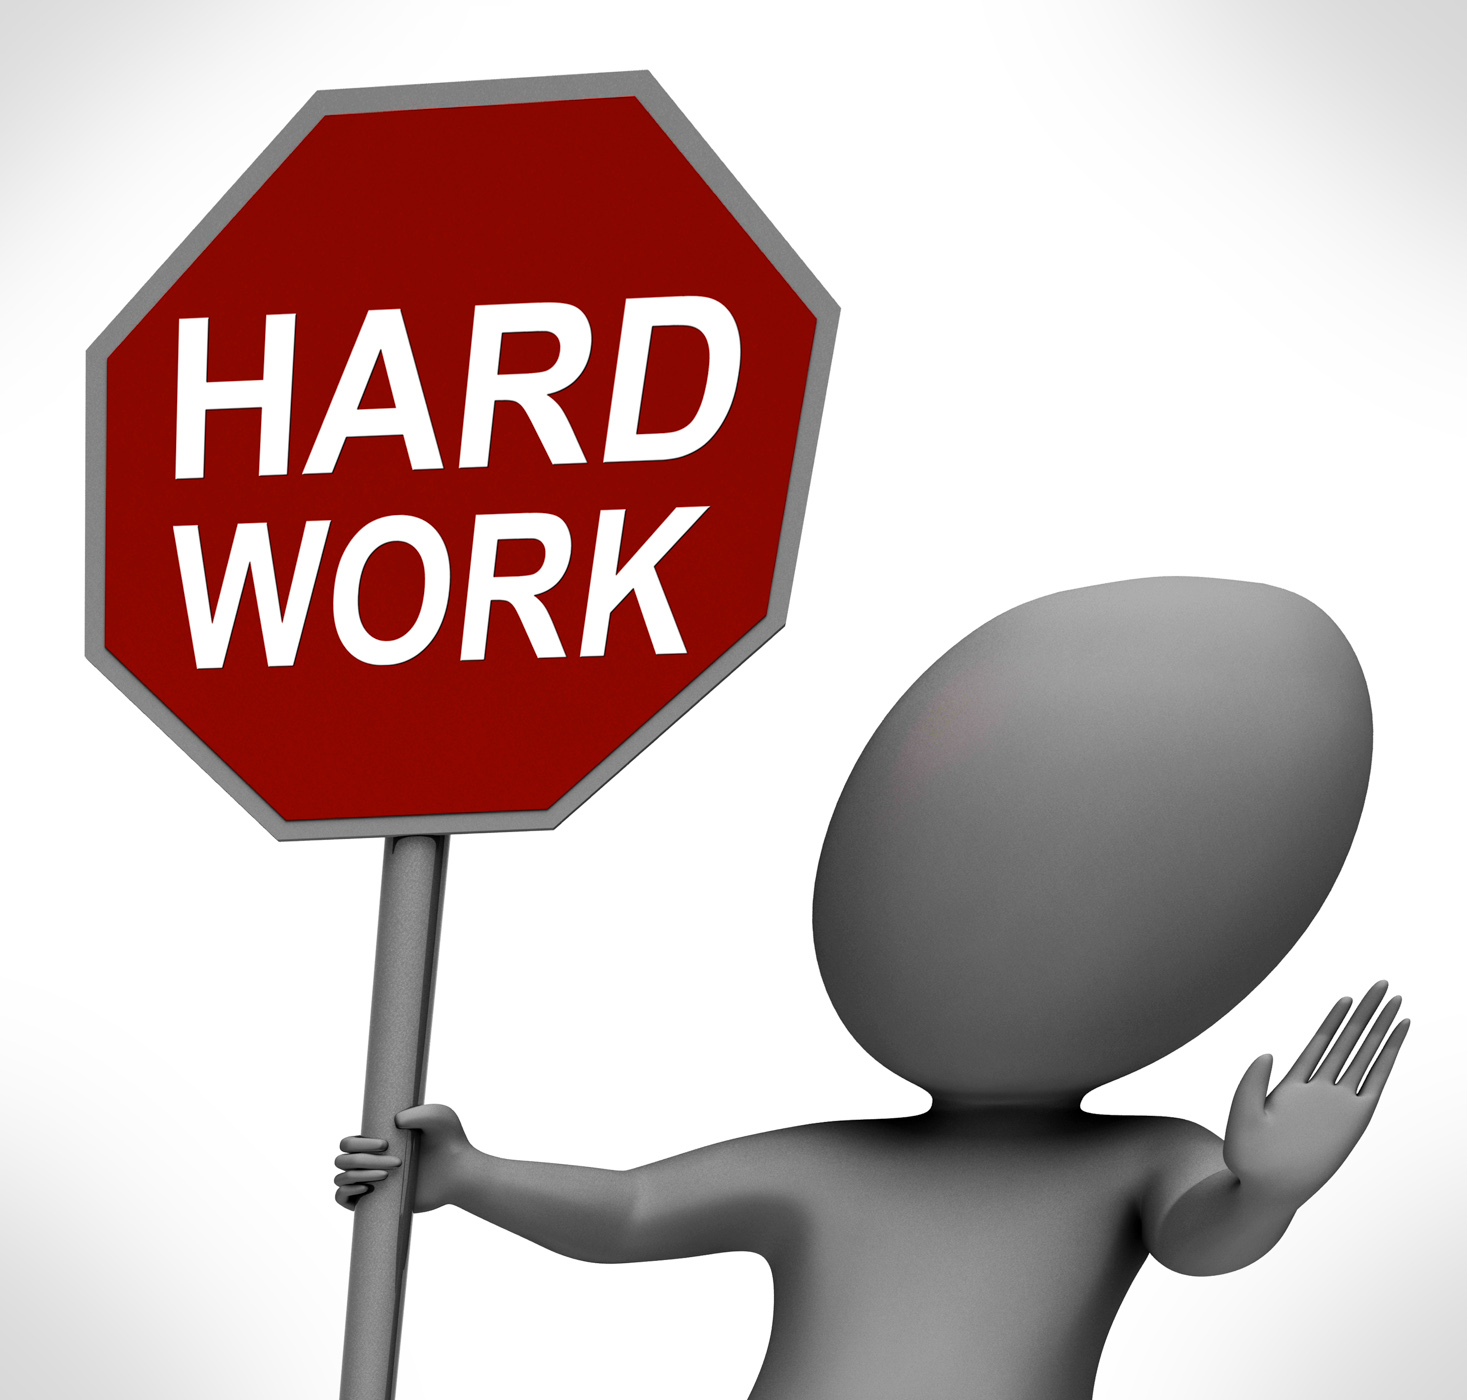 Hard work red stop sign shows stopping difficult working labour photo